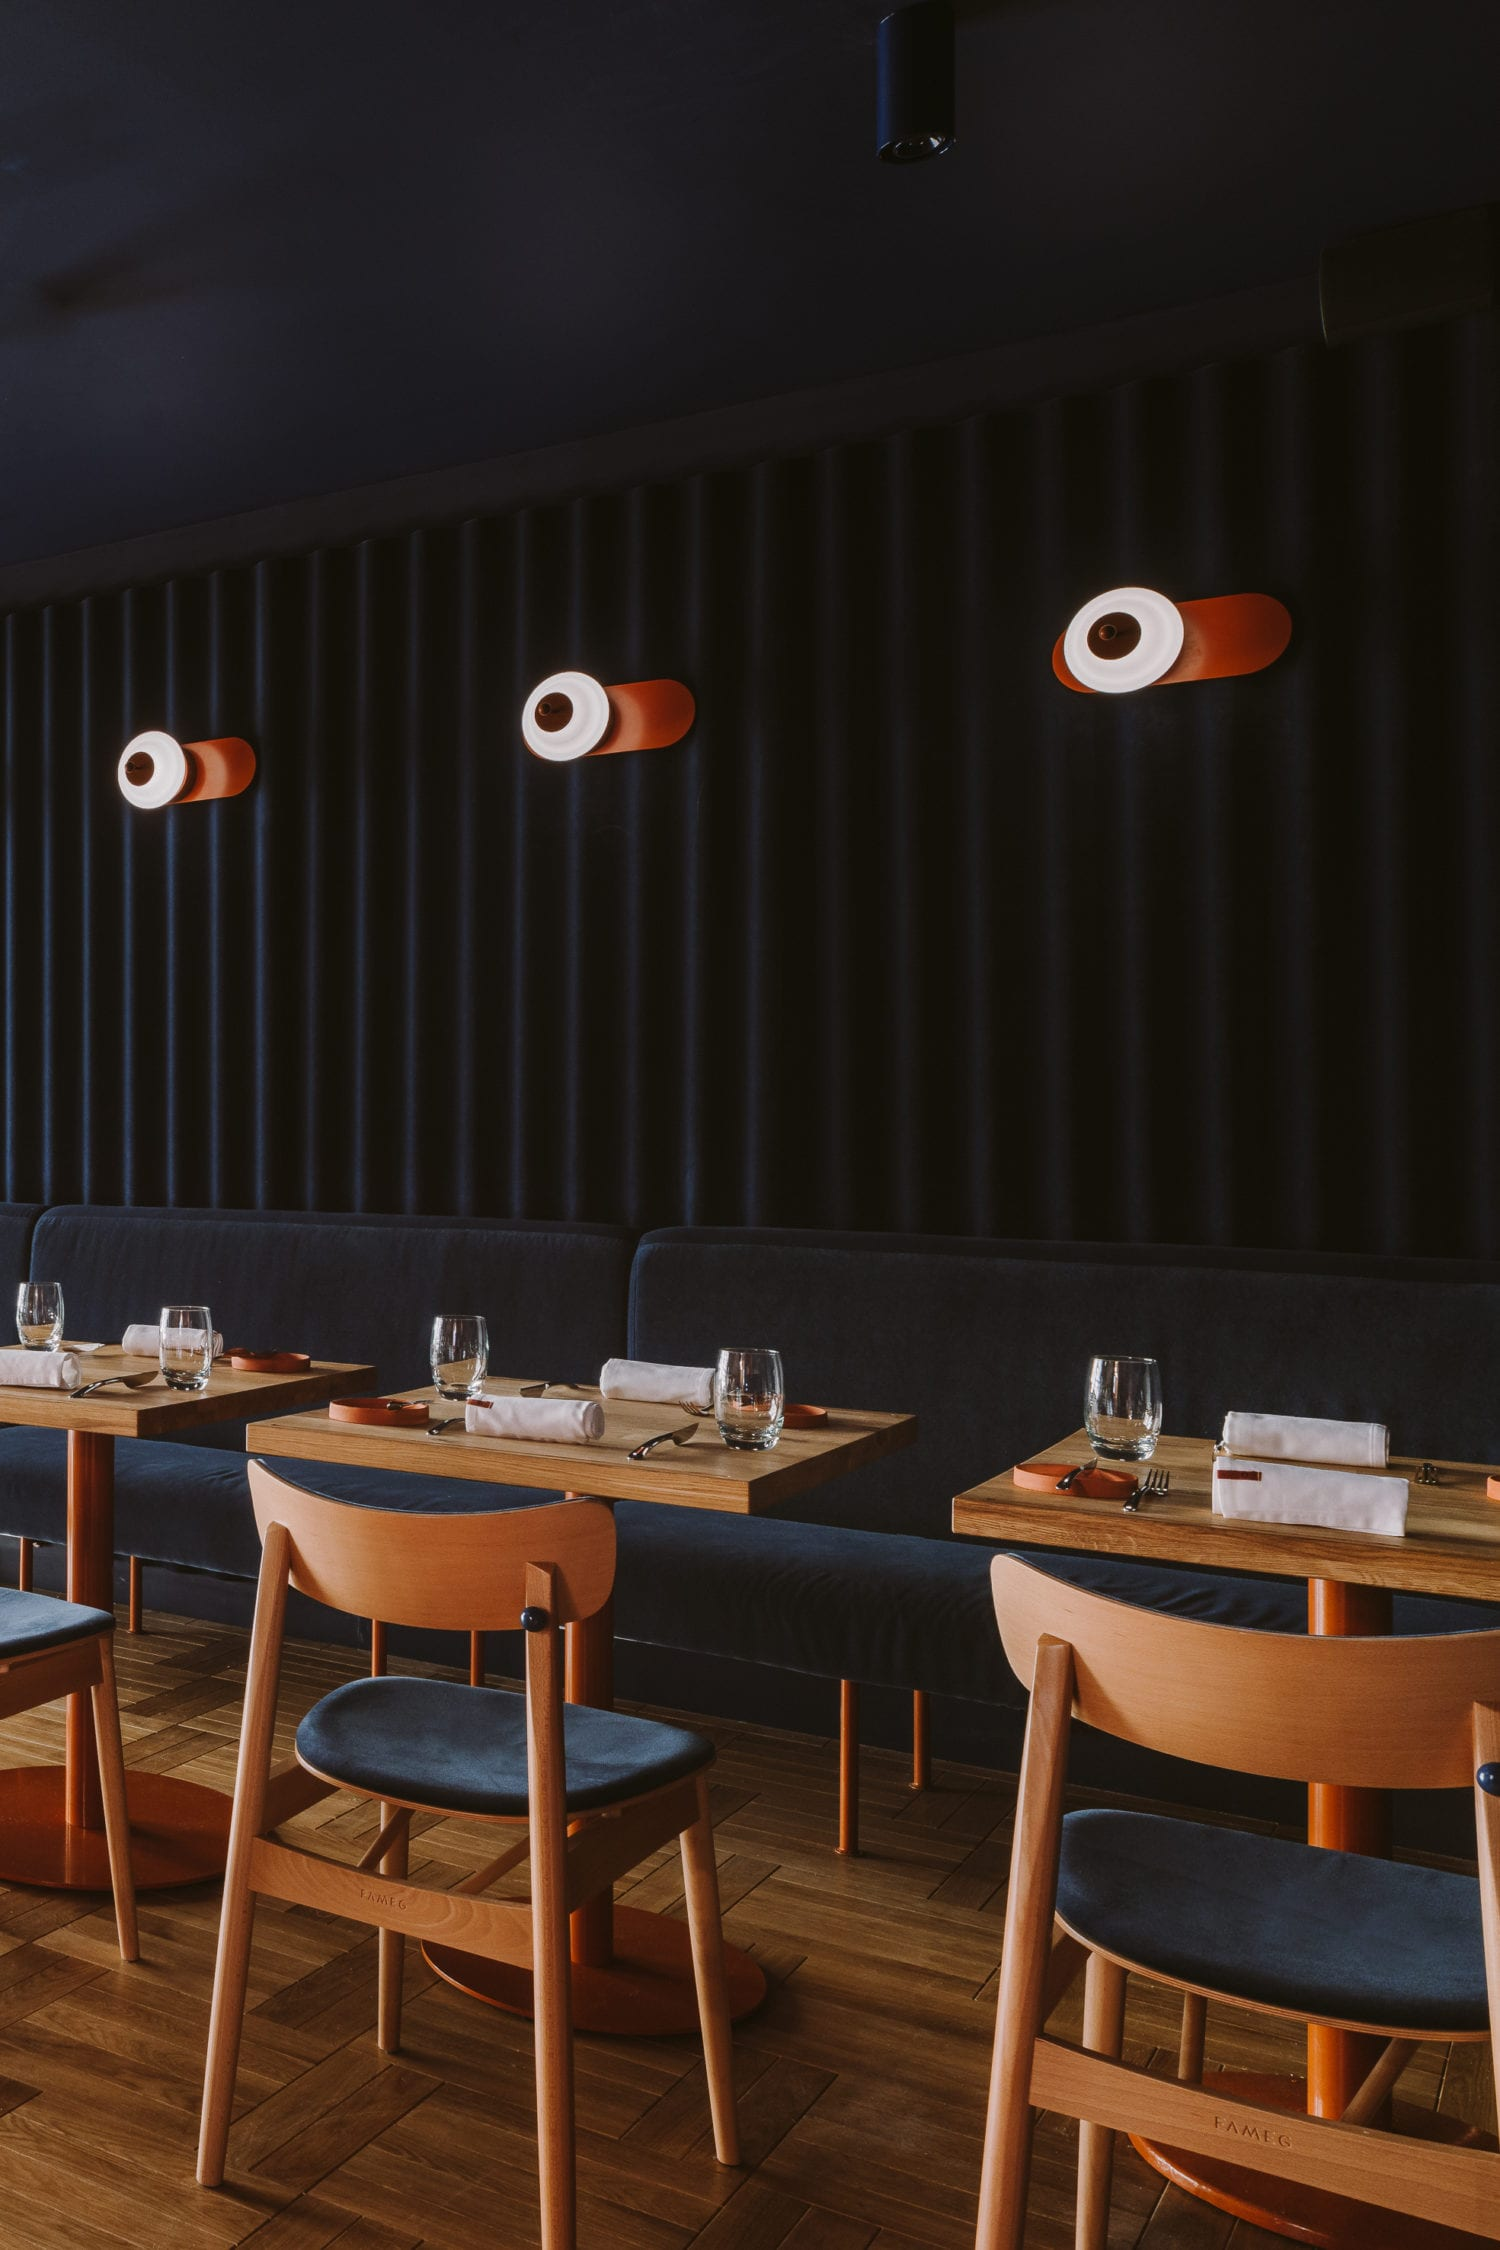 Opasly Tom Restaurant In Warsaw Poland By Buck Studio Yellowtrace 24